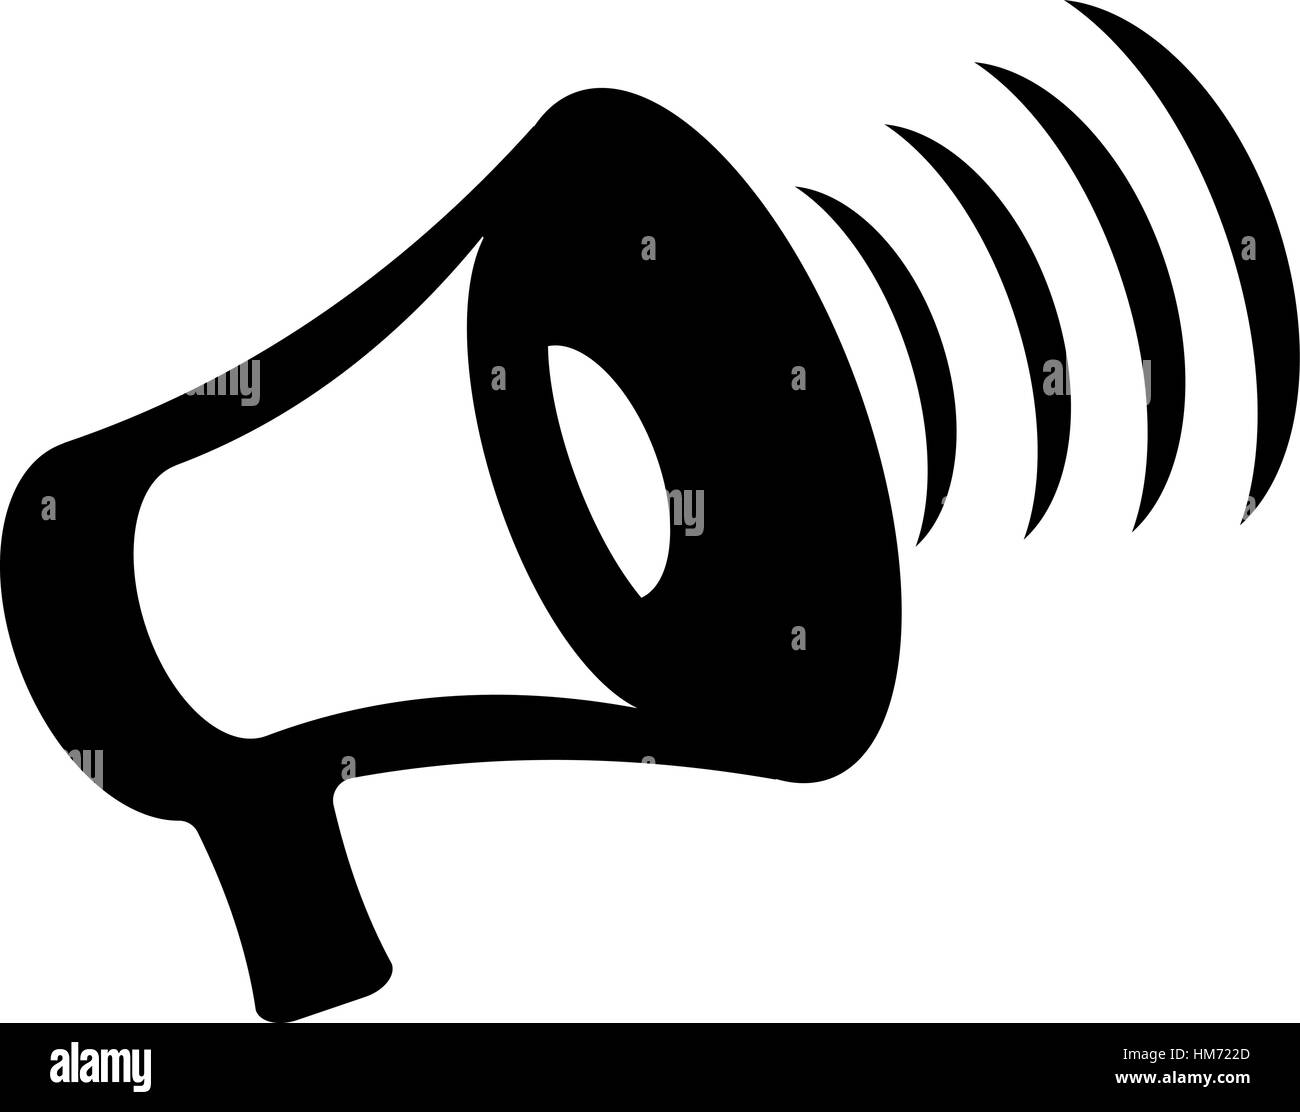 Megaphone icon vector, bullhorn solid illustration, pictogram isolated on white - Stock Vector